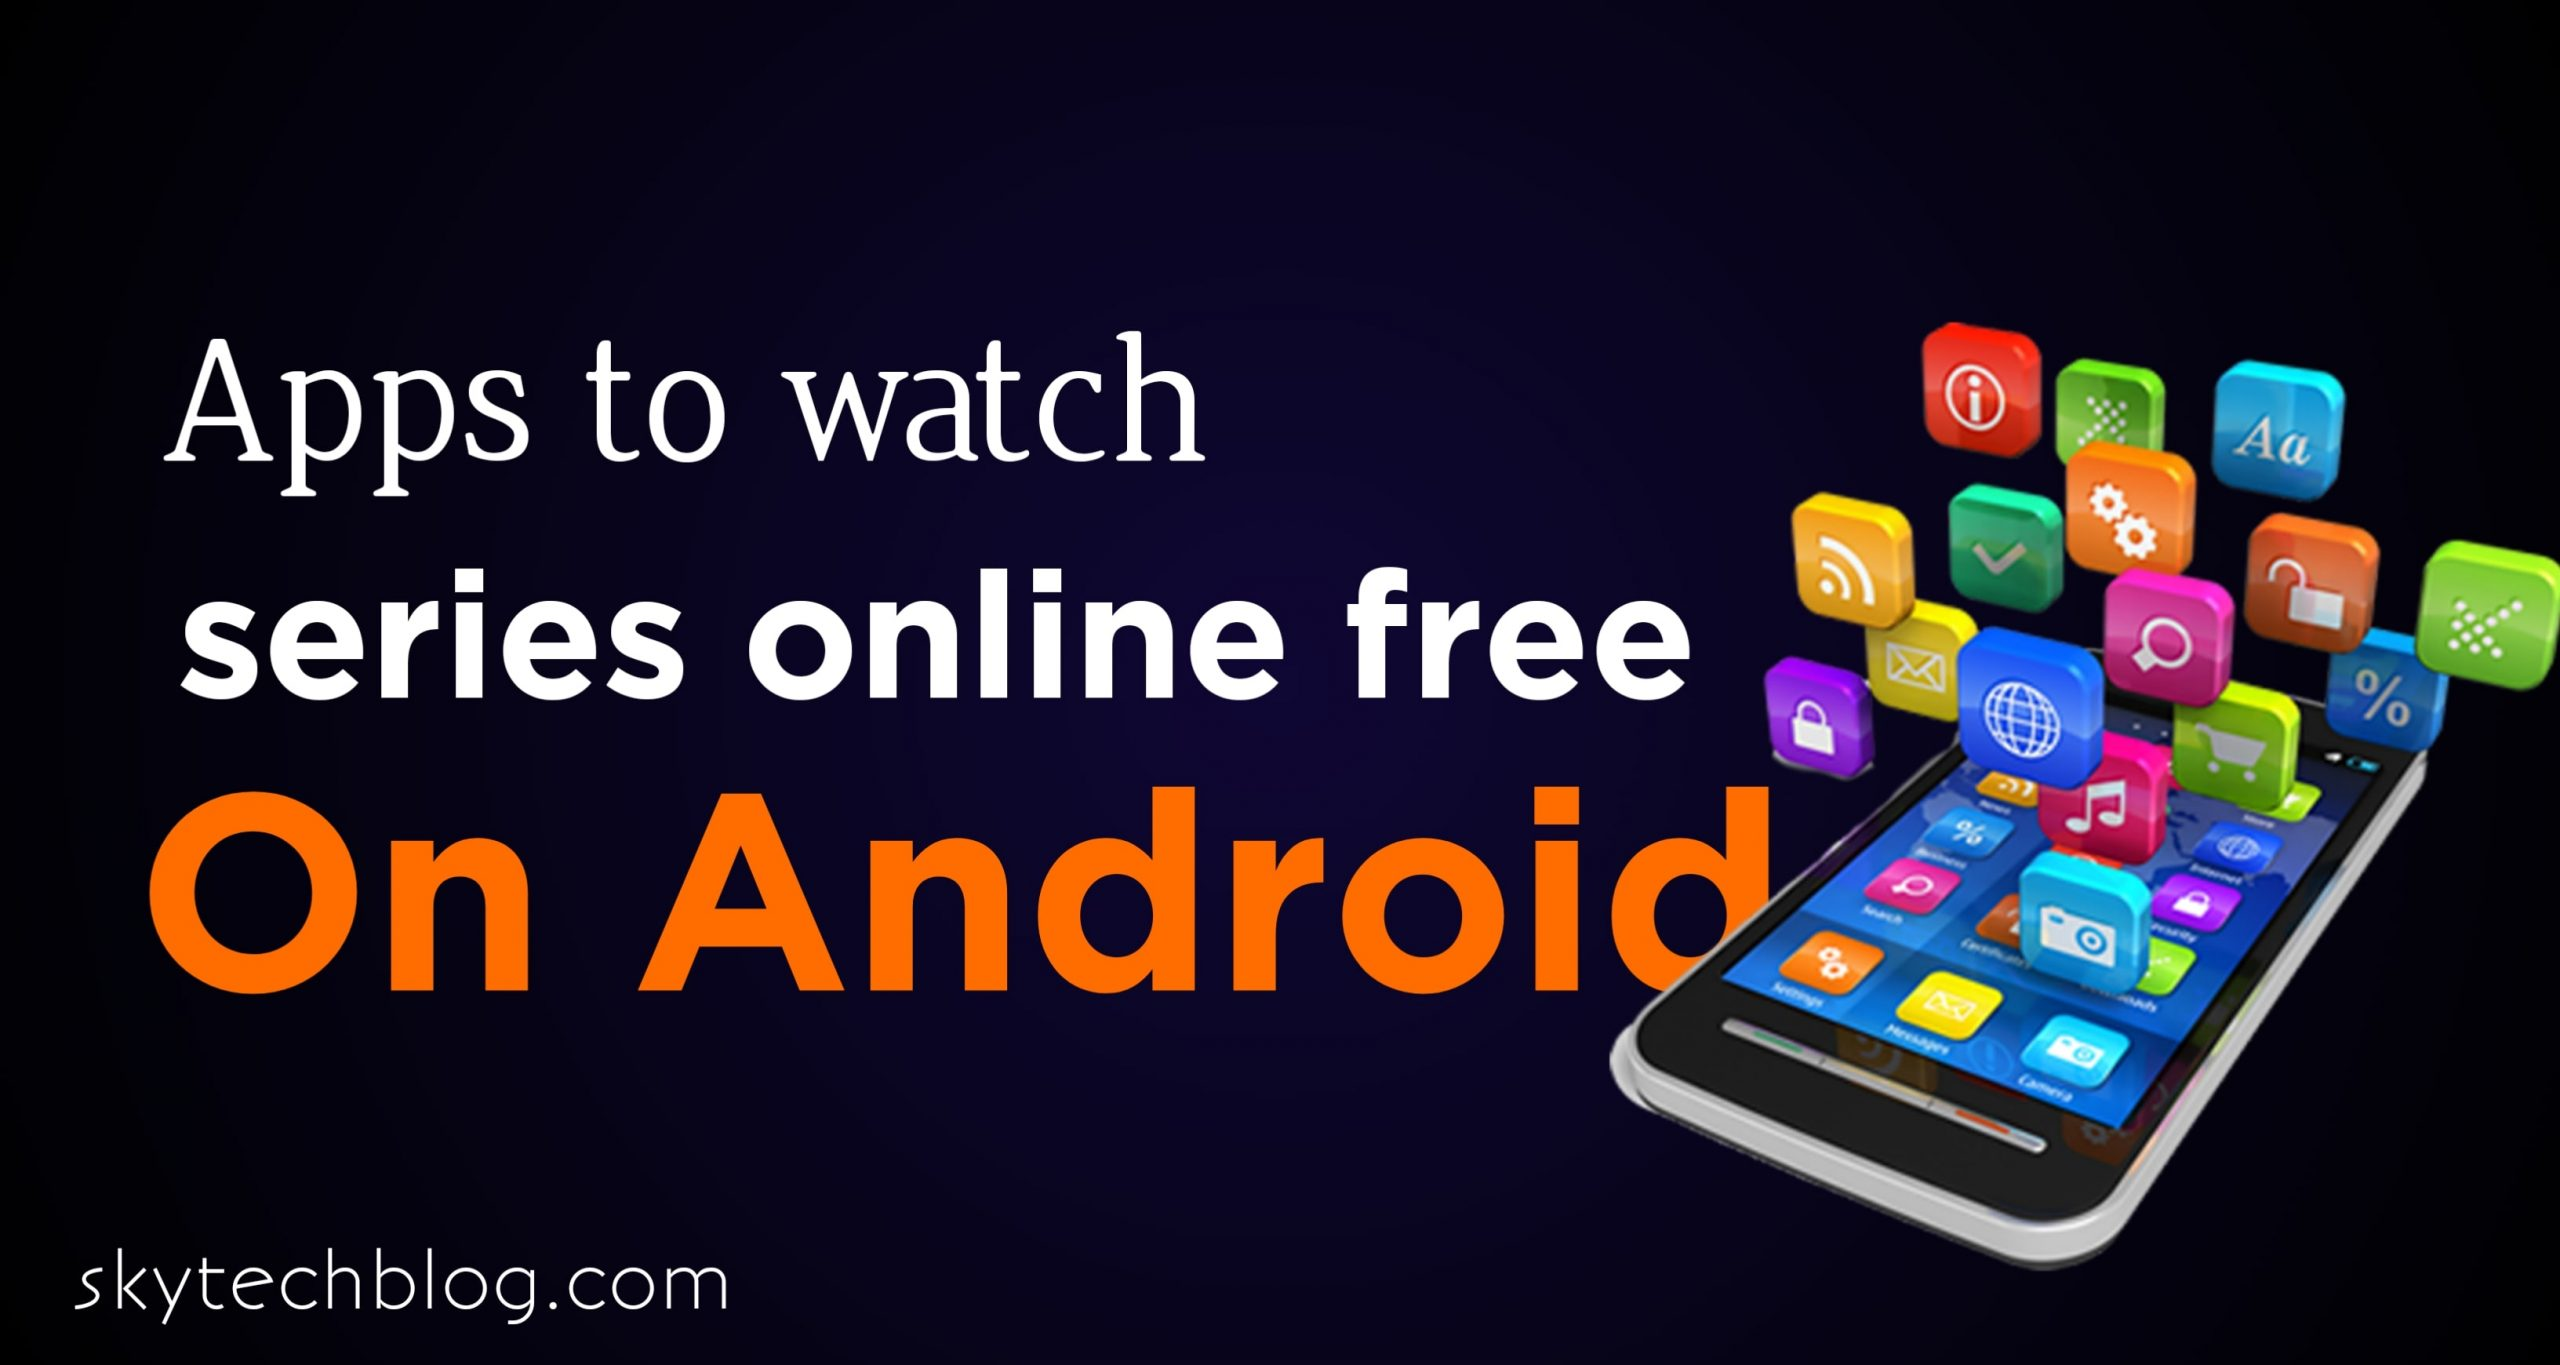 Apps to watch series online free on Android